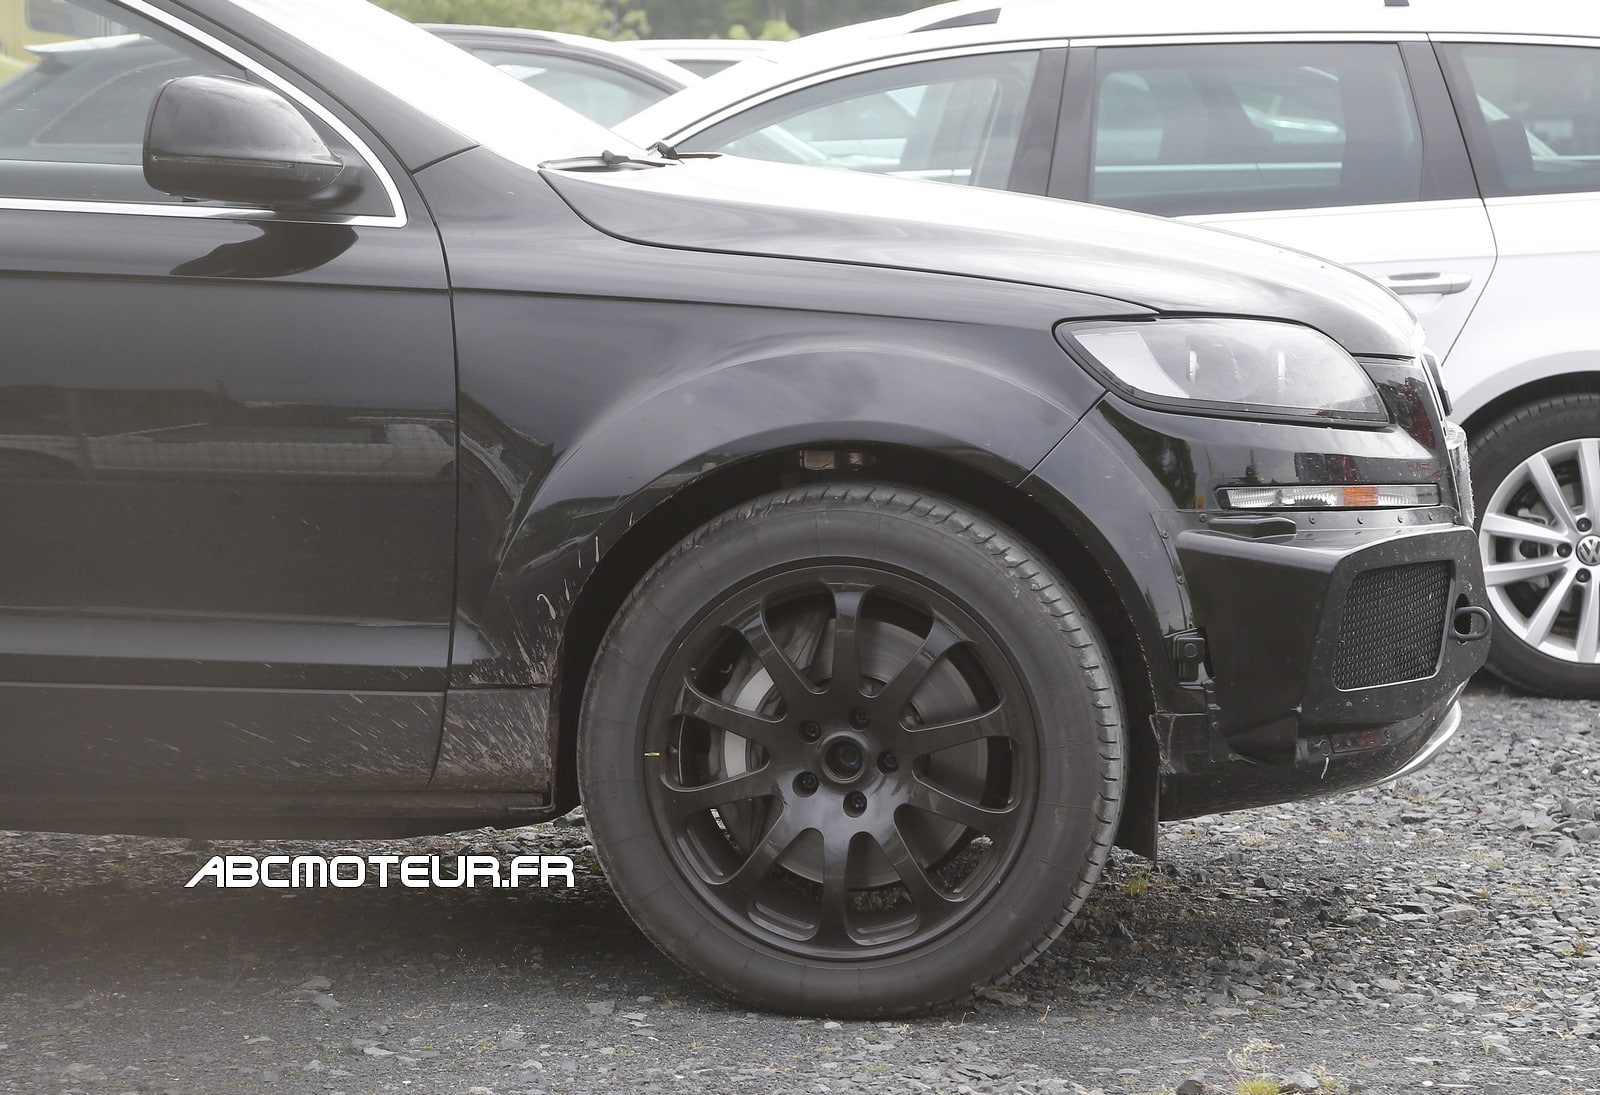 spyshot le futur suv bentley se cache encore. Black Bedroom Furniture Sets. Home Design Ideas